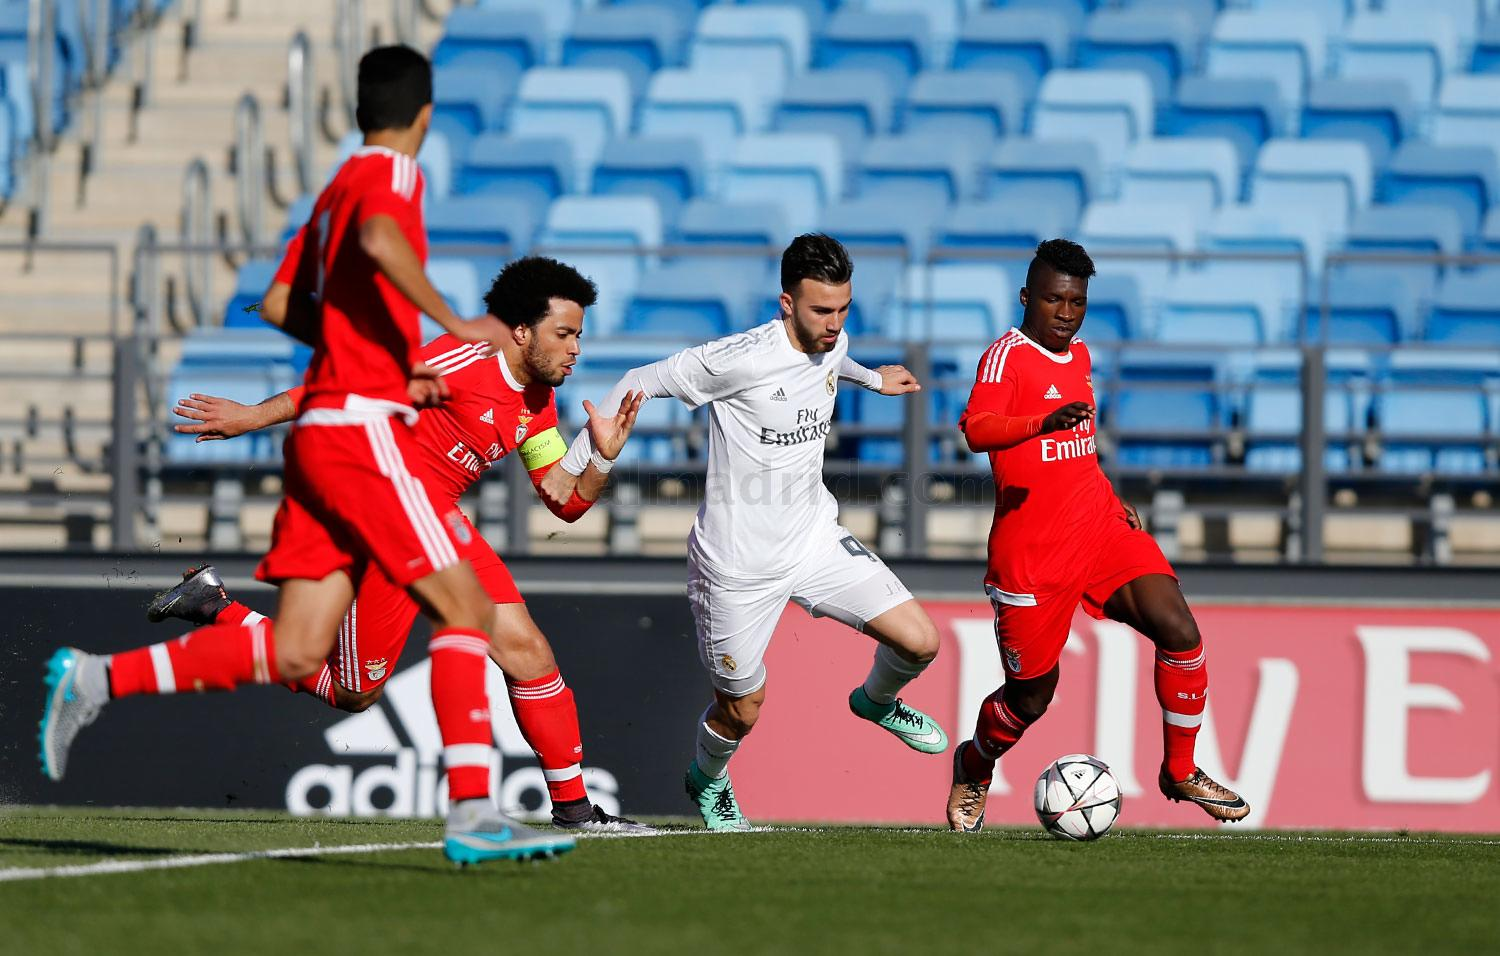 Real Madrid - Juvenil A - Benfica - 08-03-2016